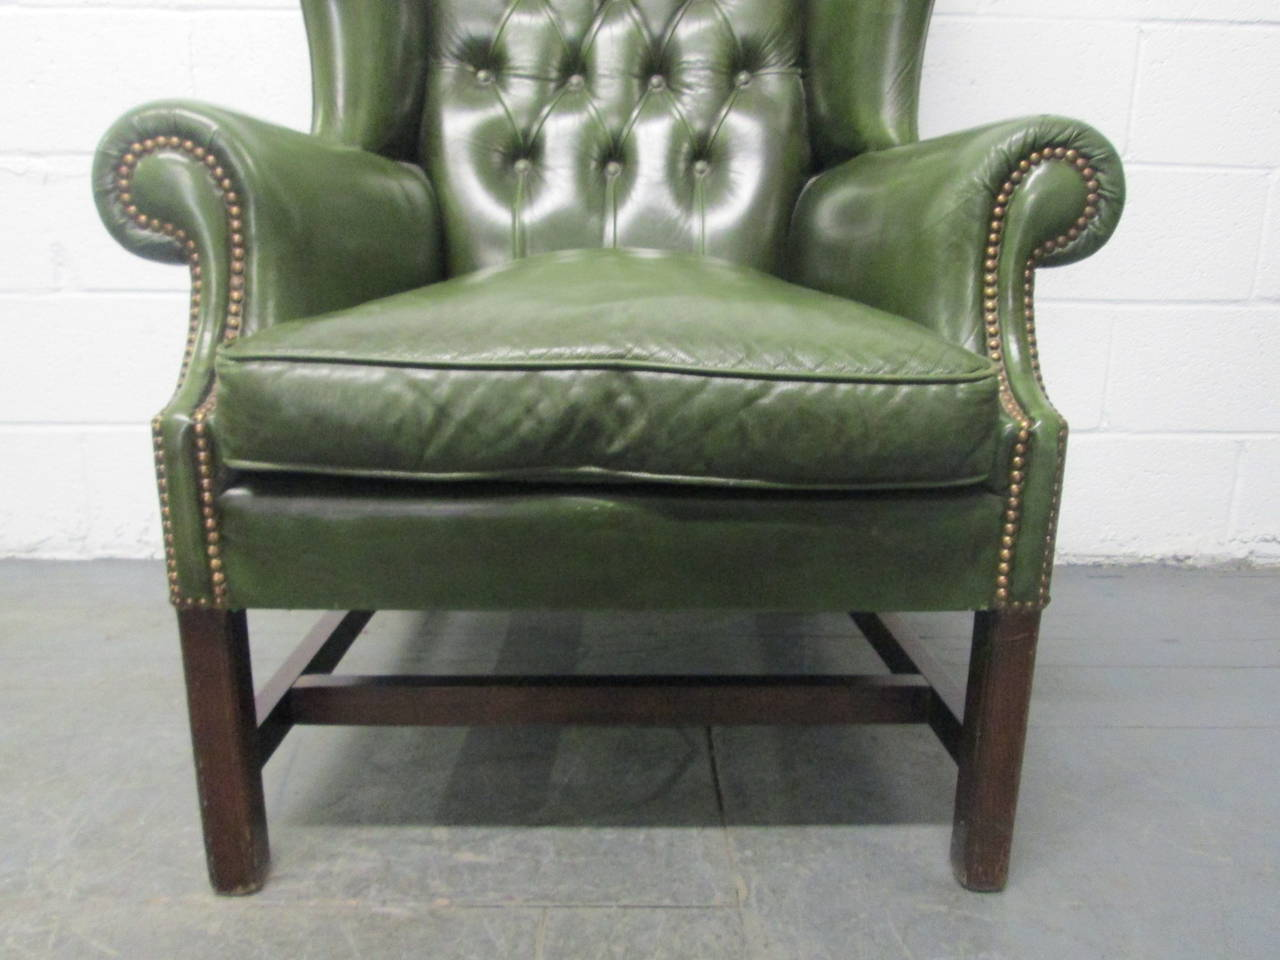 tufted leather wingback chair bistro dining chairs vintage green at 1stdibs